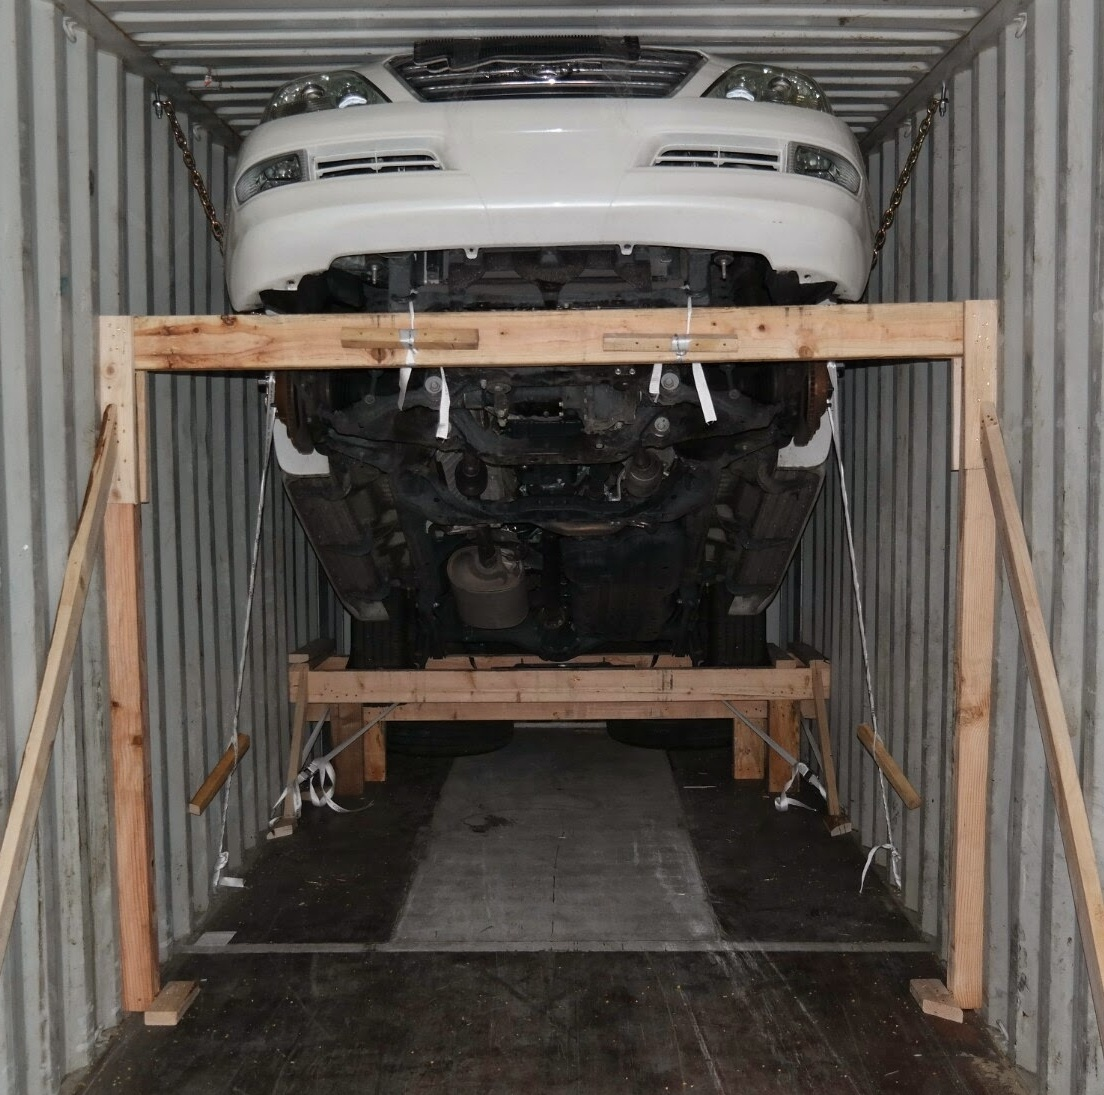 Lexus GX 470 loaded in a container